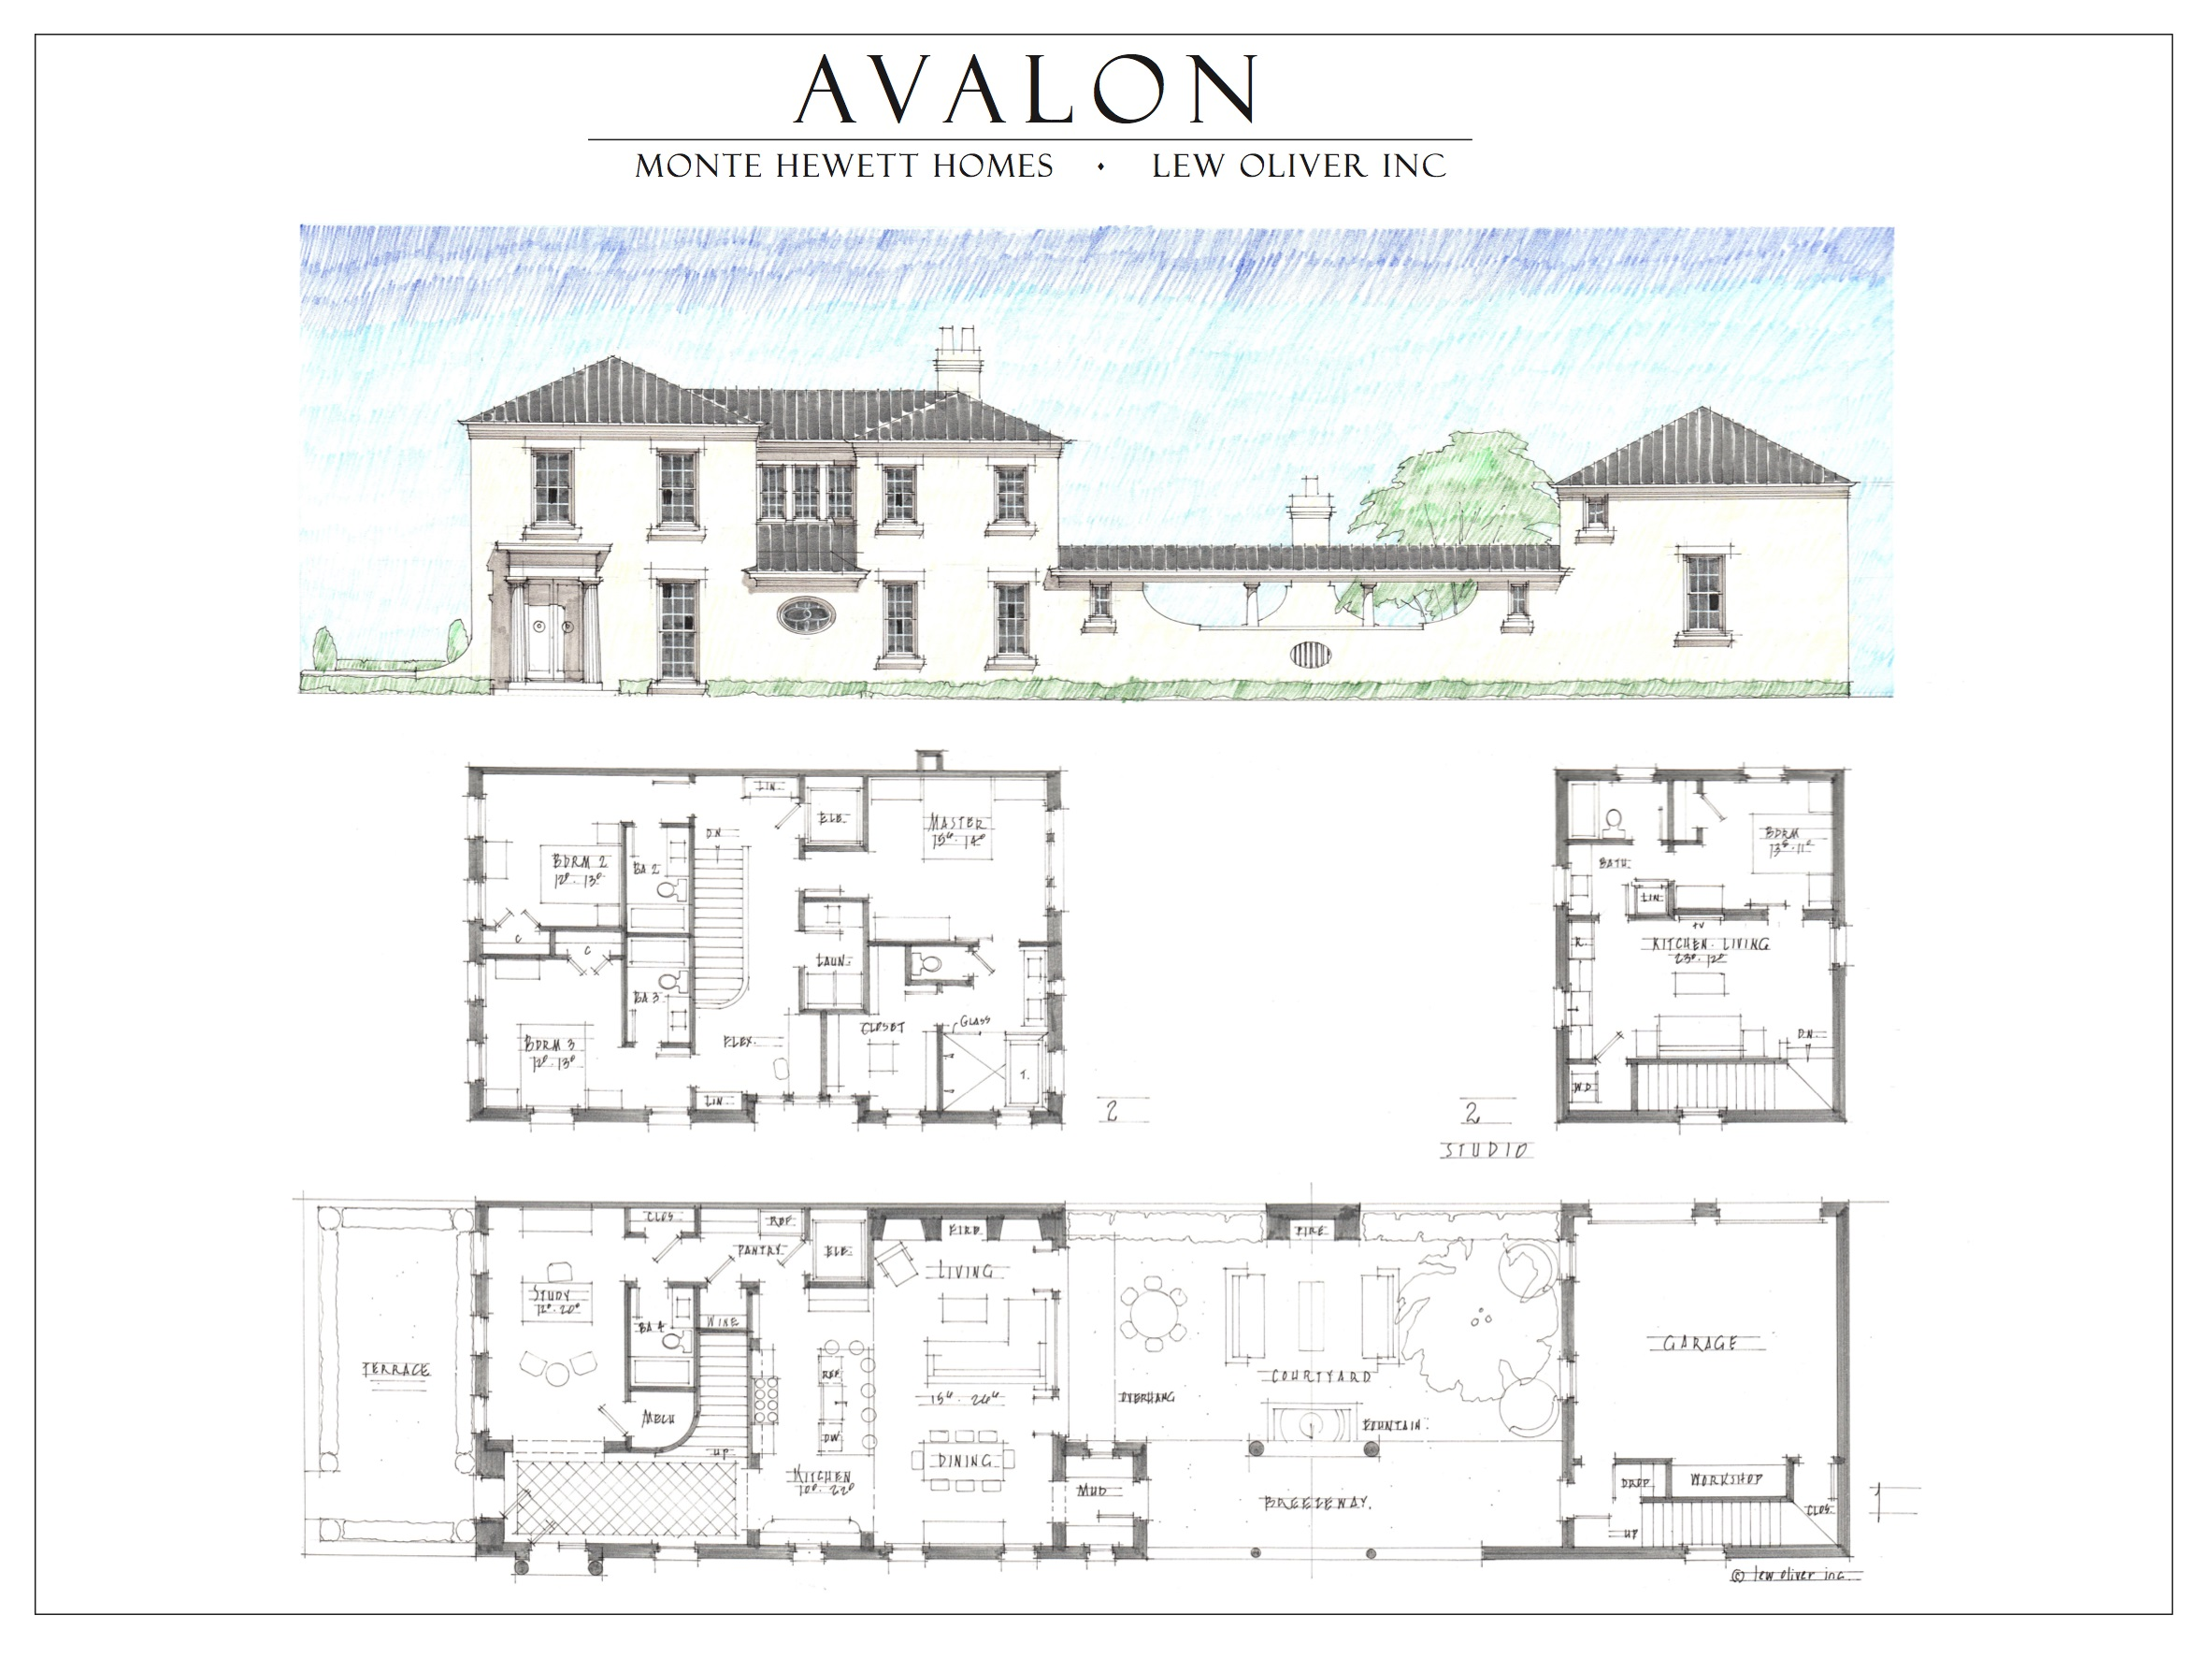 Live in avalon old milton parkway alpharetta monte hewett for House plans georgia